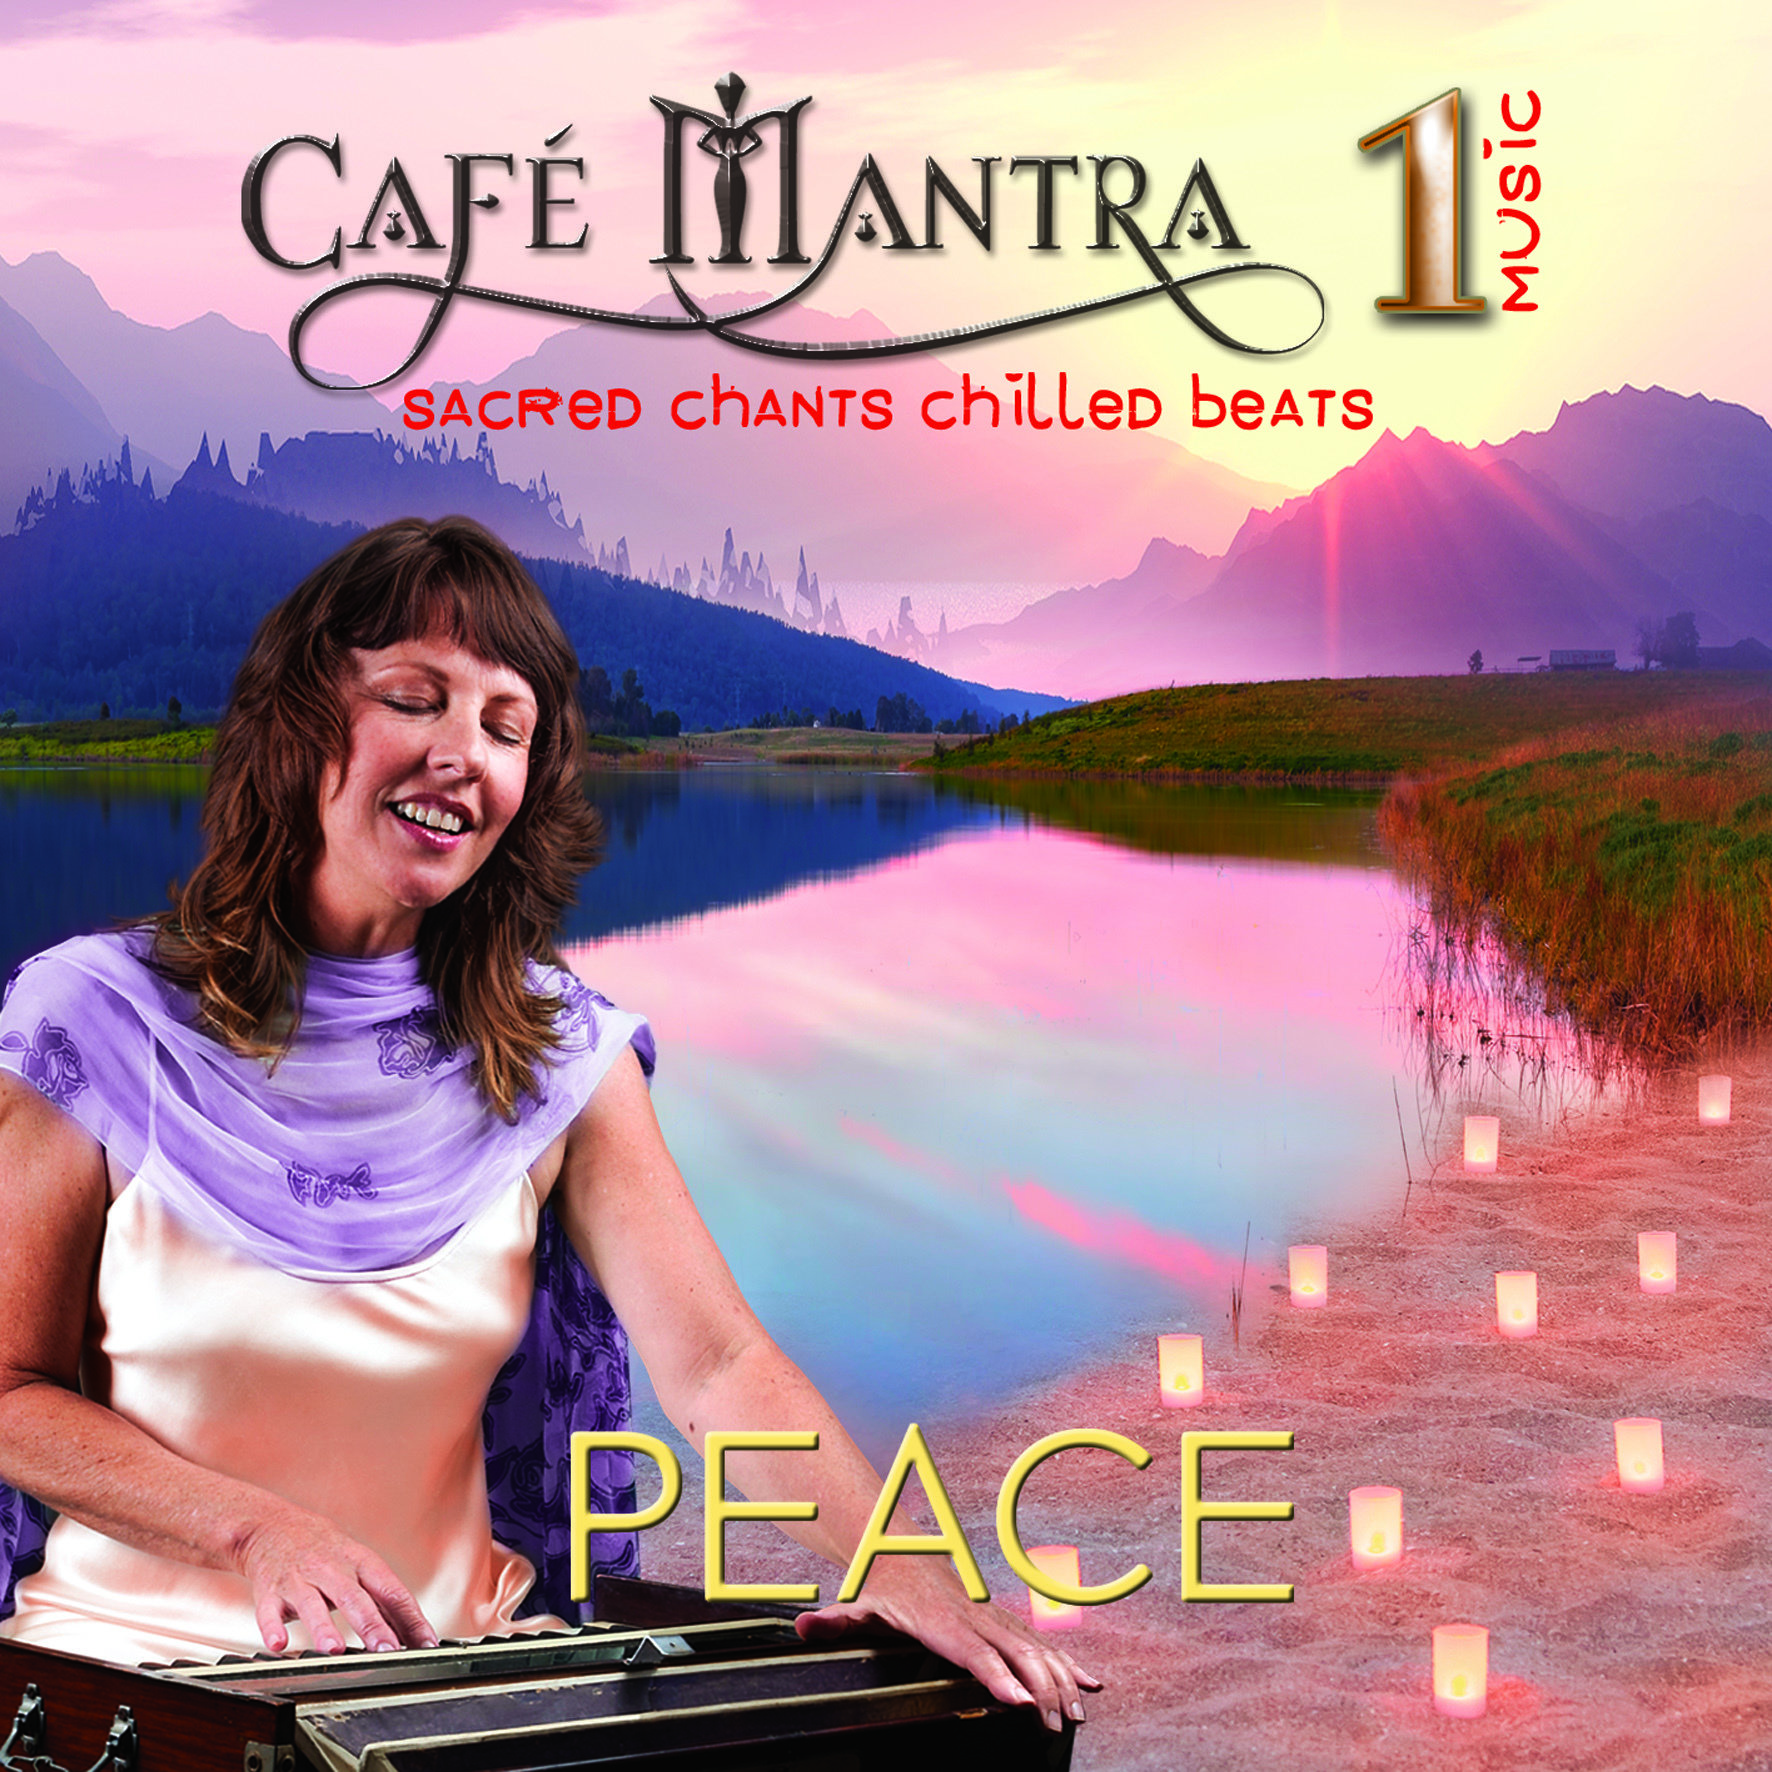 CD Cafe Mantra Music1 Peace 00000